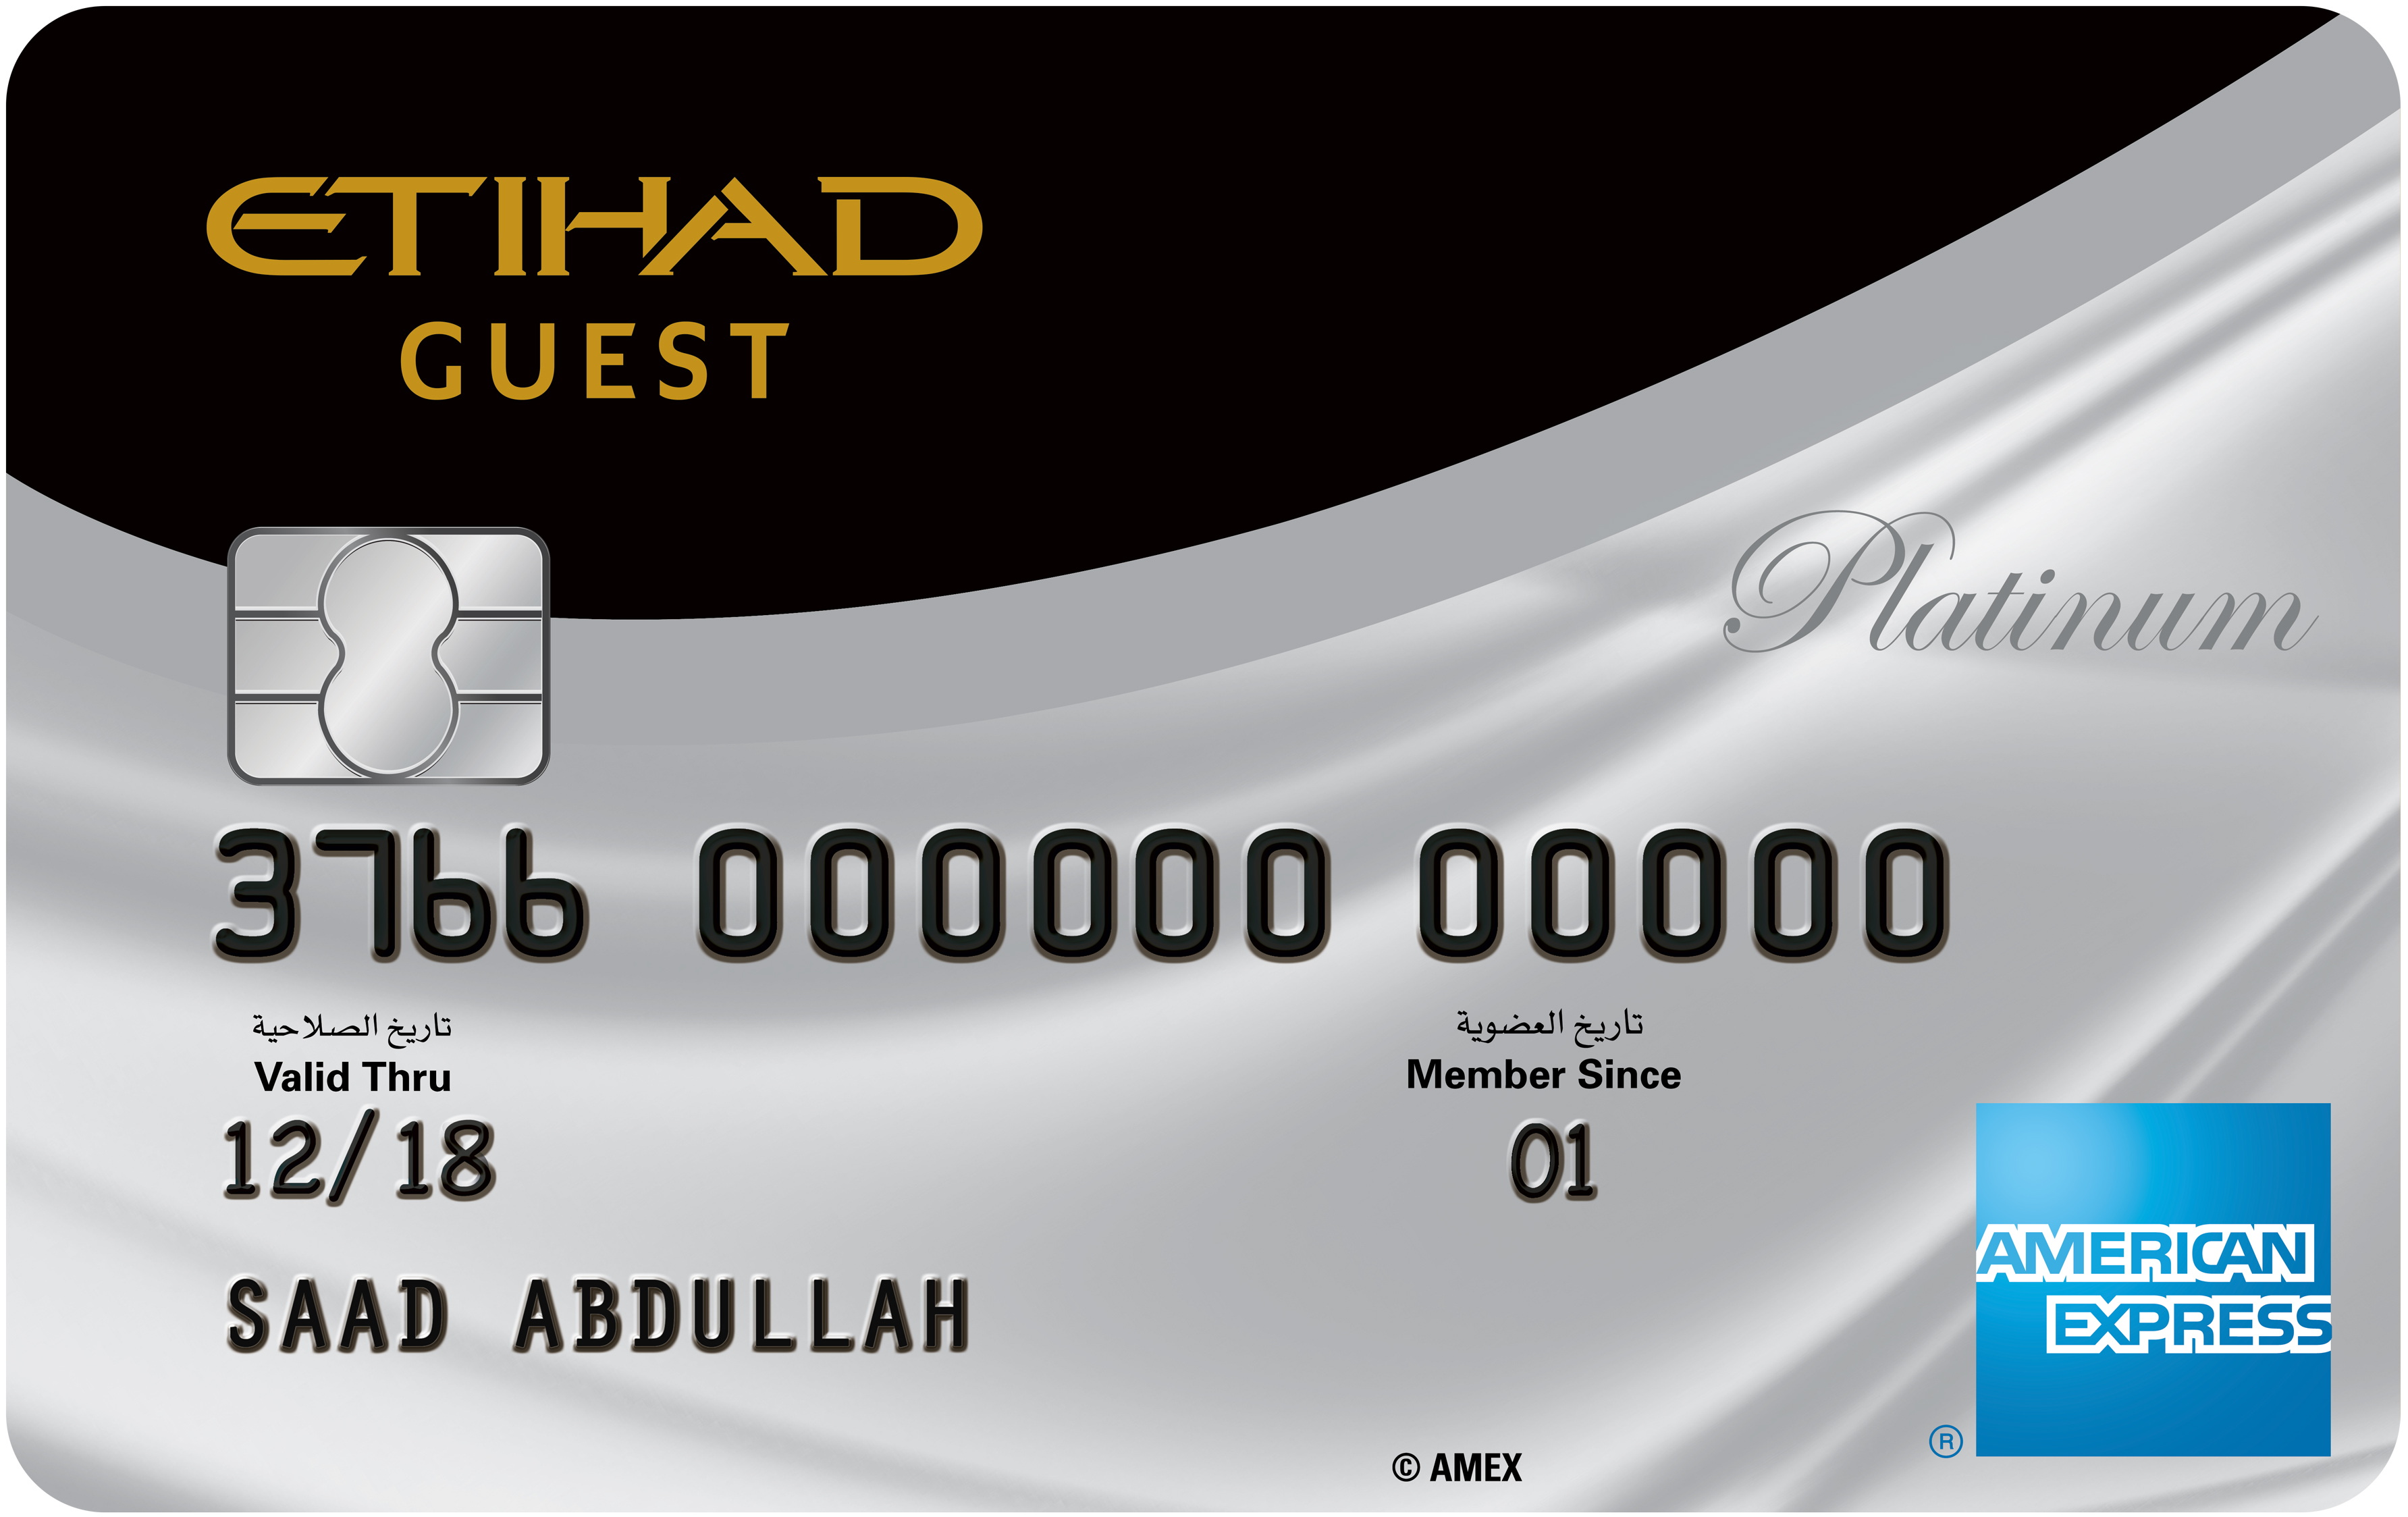 Etihad Guest The American Express Etihad Guest Platinum Credit Card